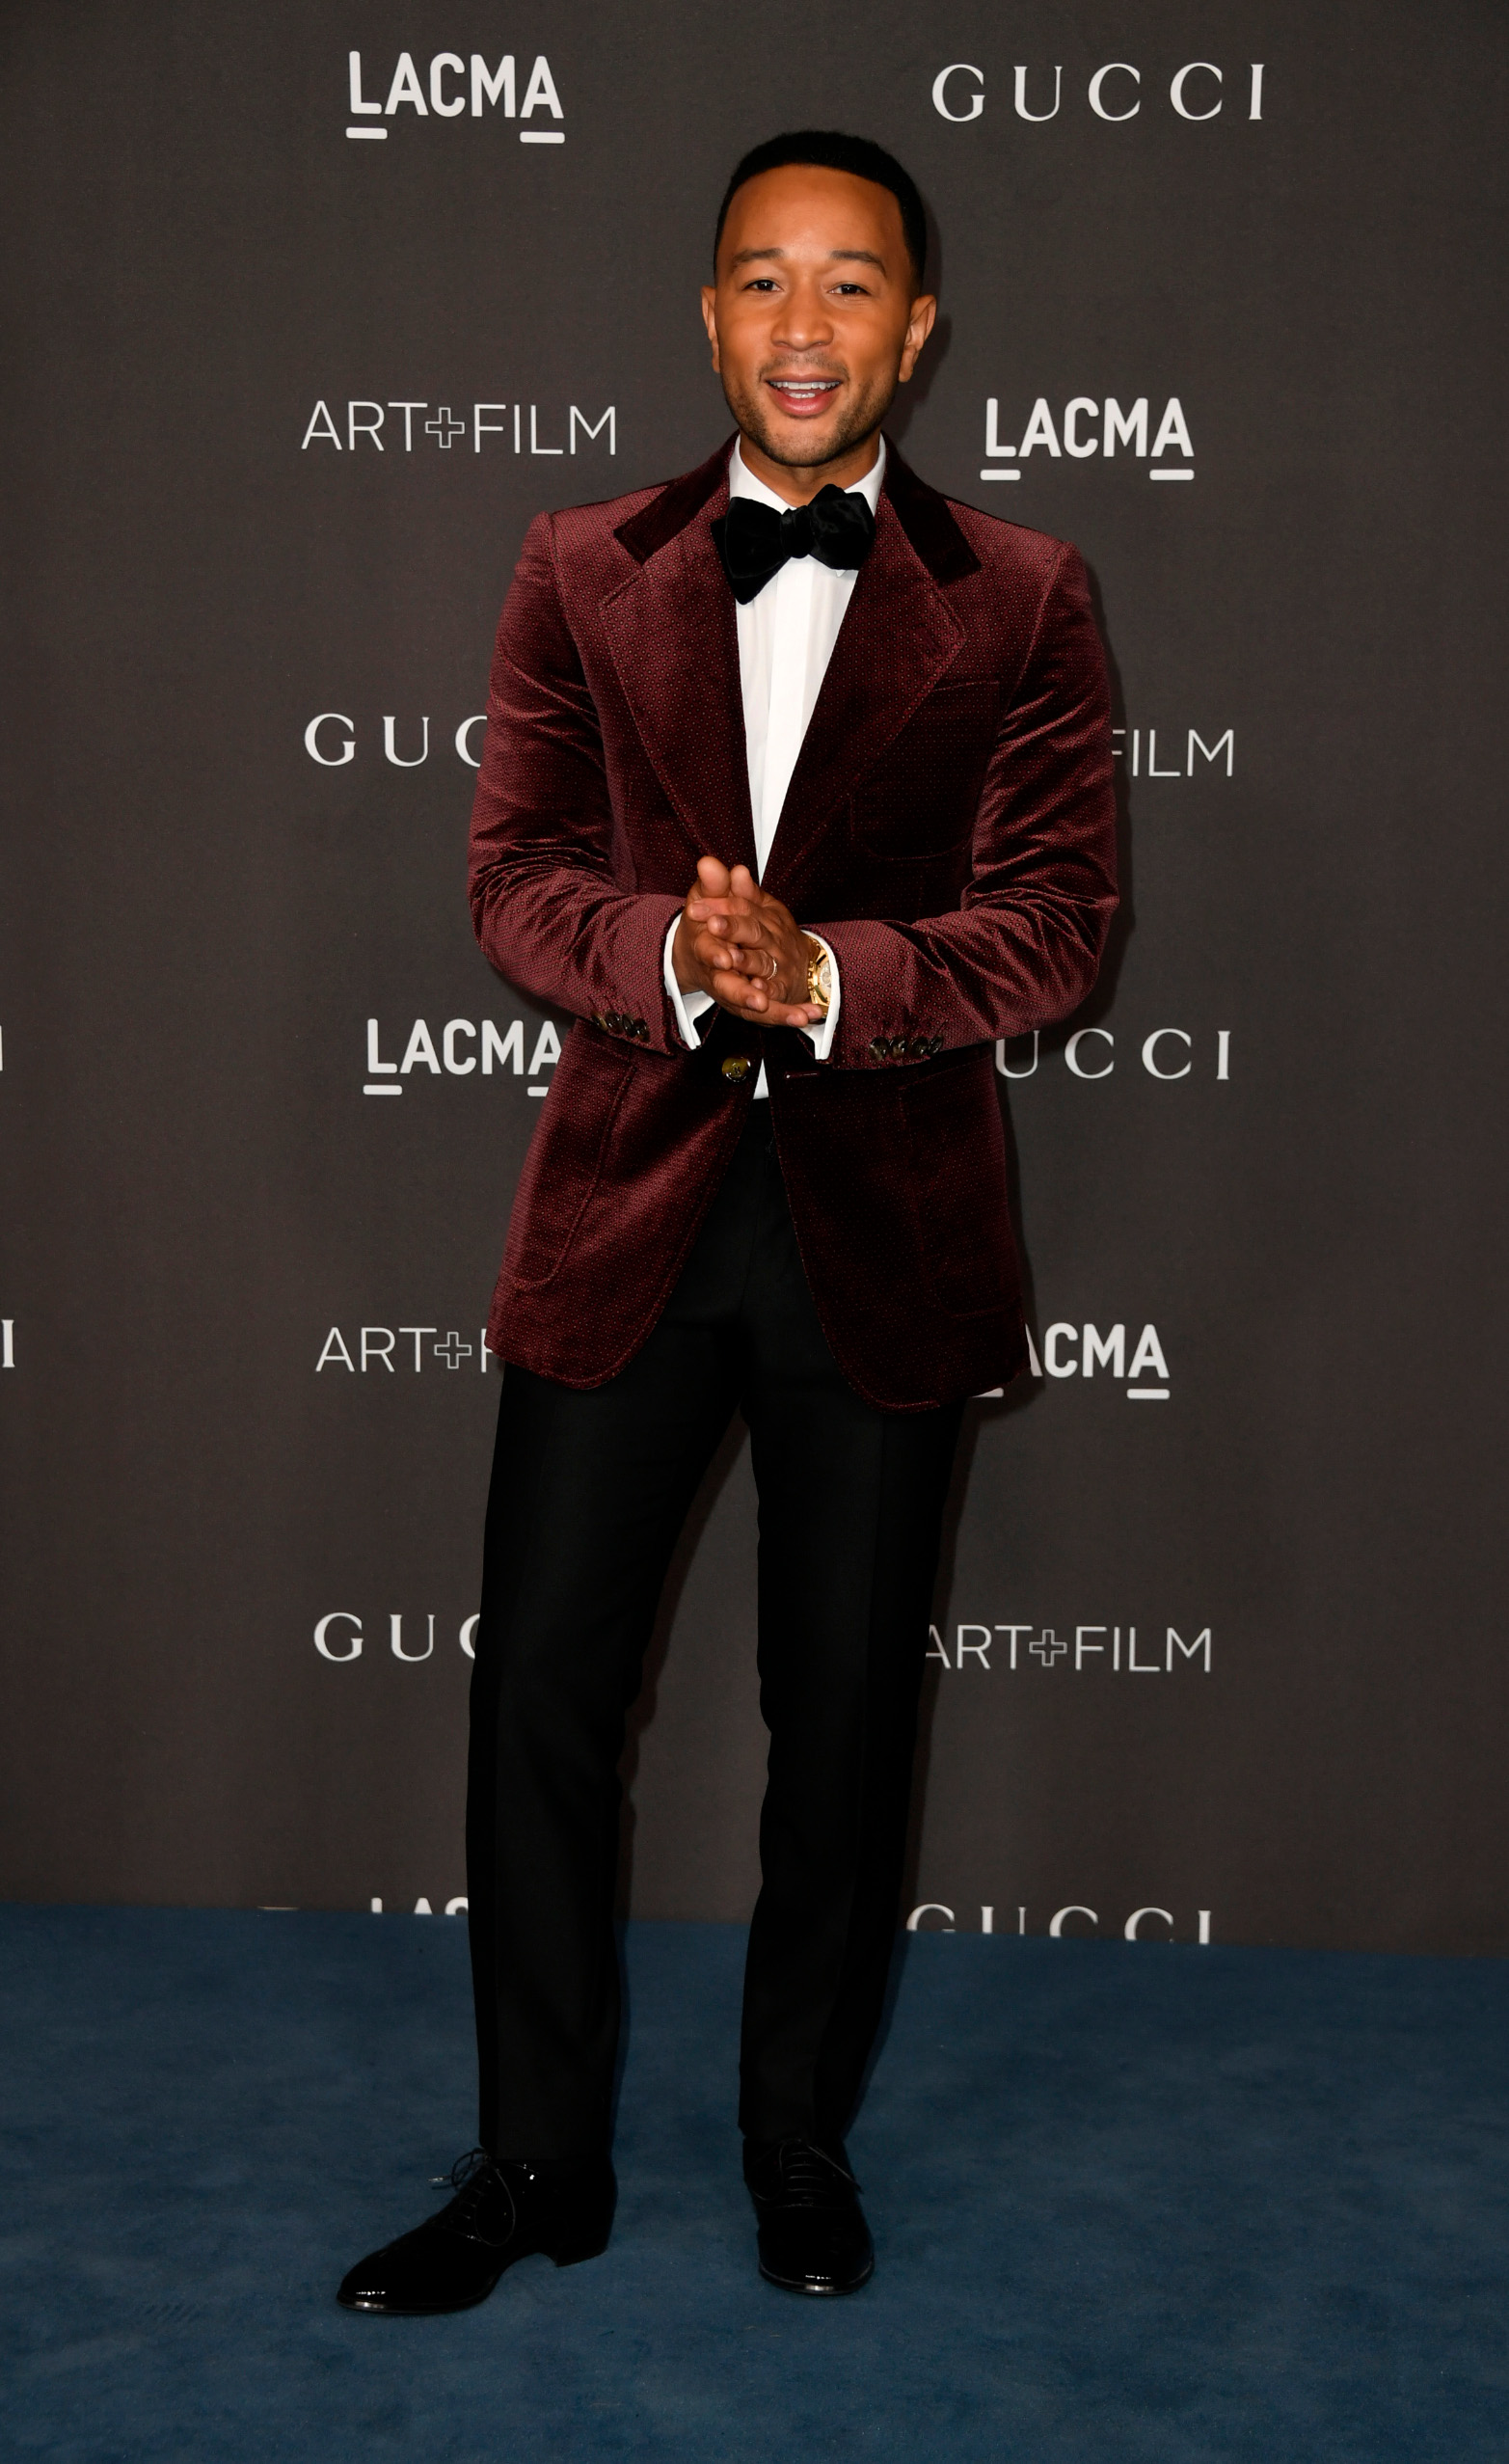 LOS ANGELES, CALIFORNIA - NOVEMBER 02: John Legend attends the 2019 LACMA Art + Film Gala Presented By Gucci at LACMA on November 02, 2019 in Los Angeles, California. (Photo by Frazer Harrison/Getty Images)